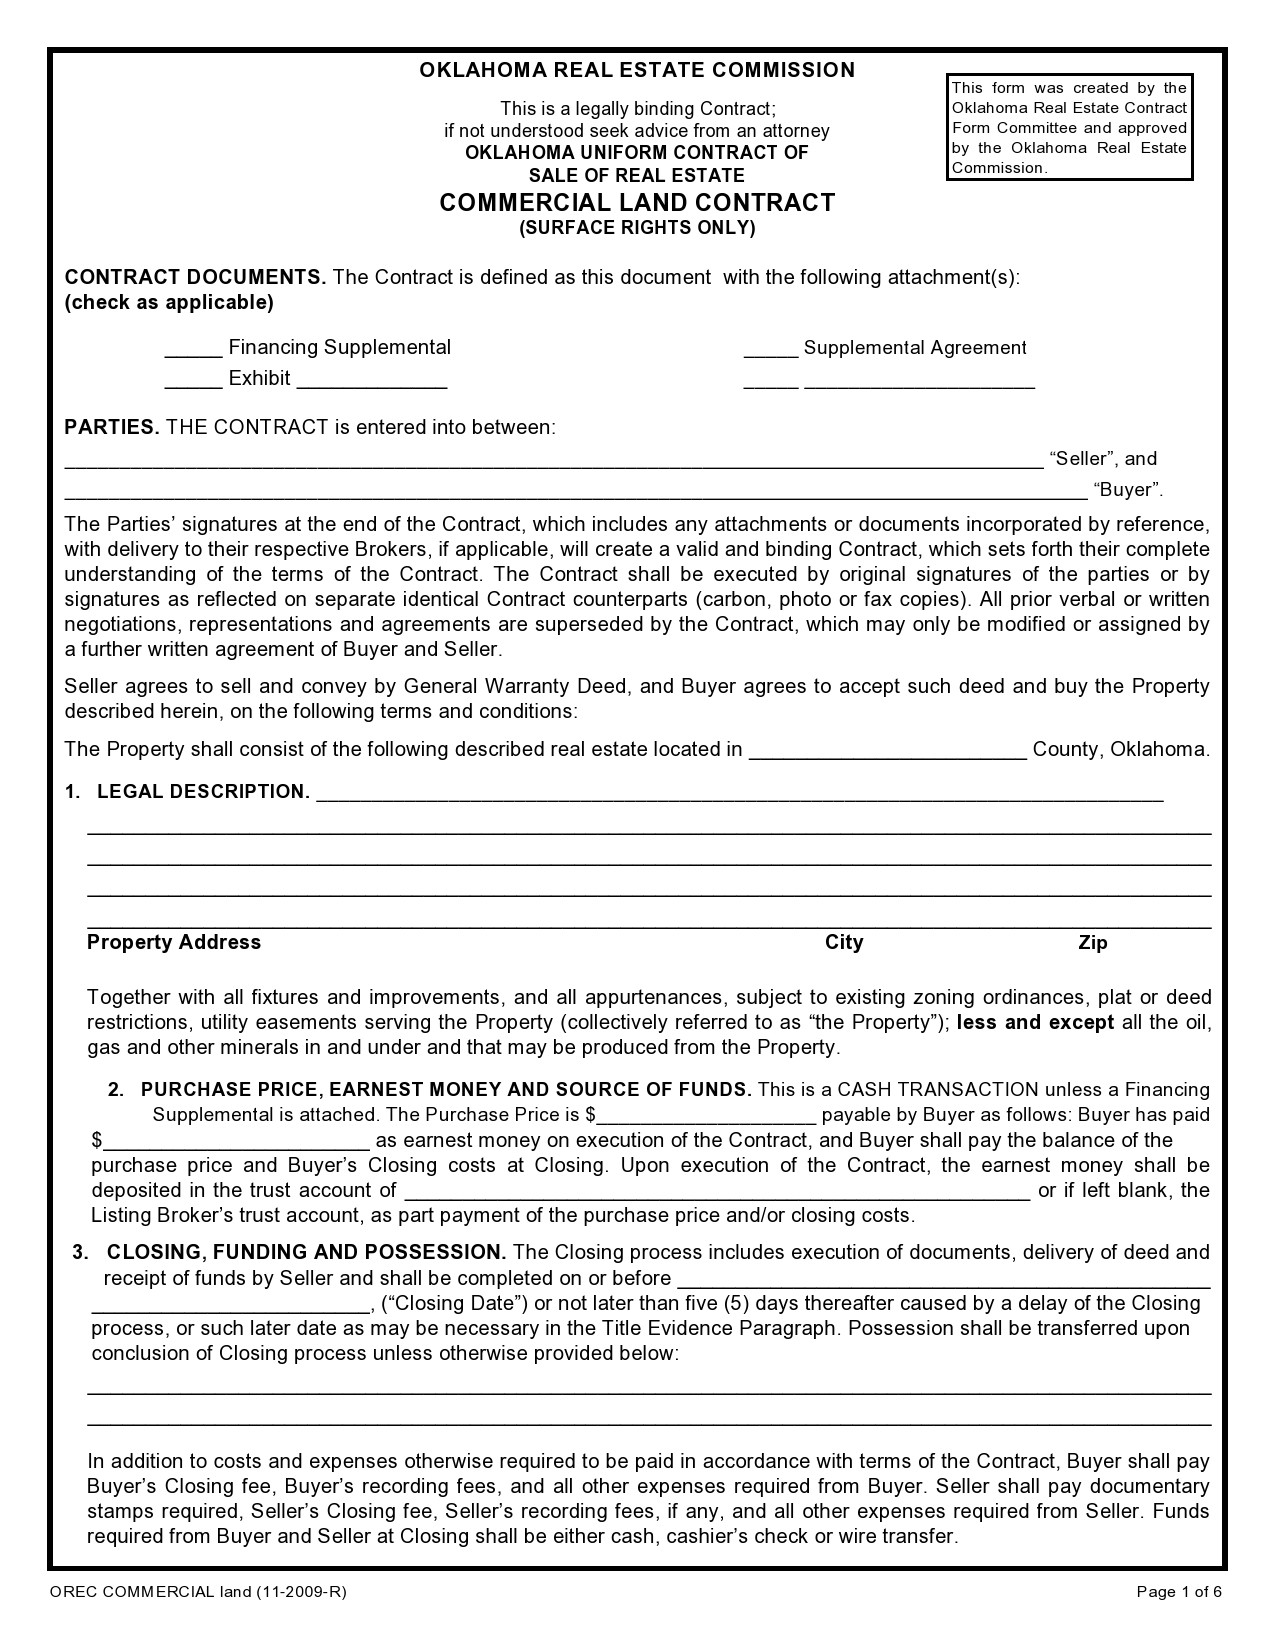 Free land contract form 09